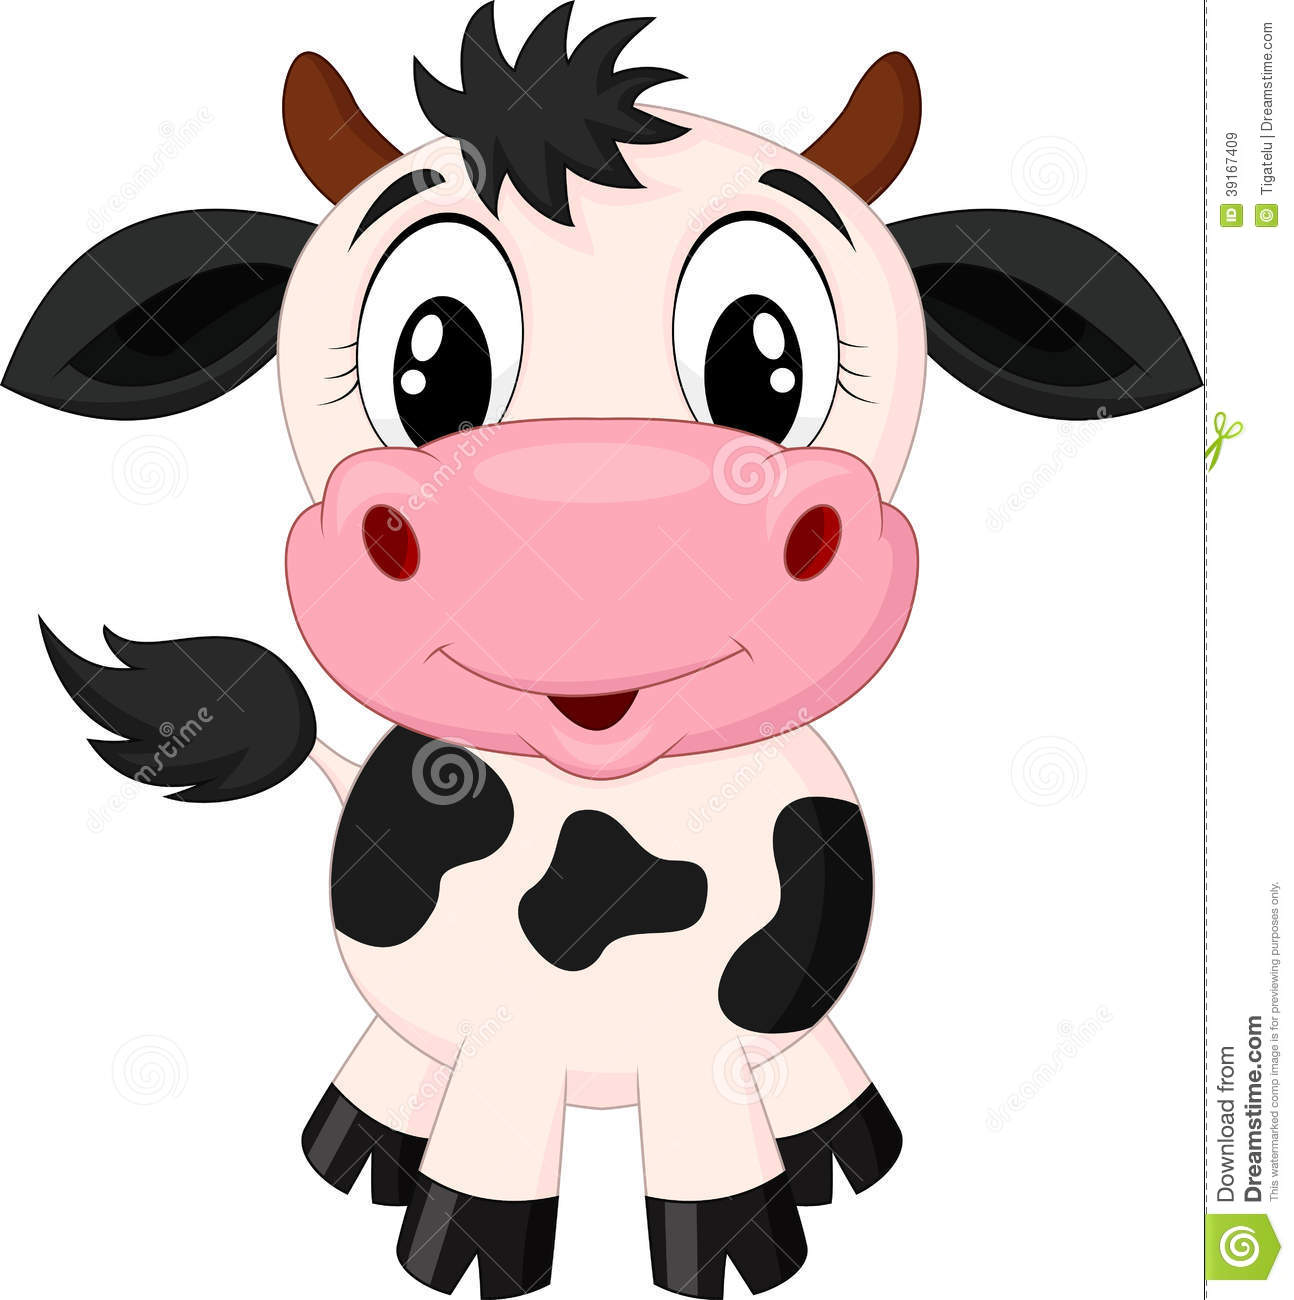 Illustration of Cute cow cartoon Cute Funny Cow Cartoon